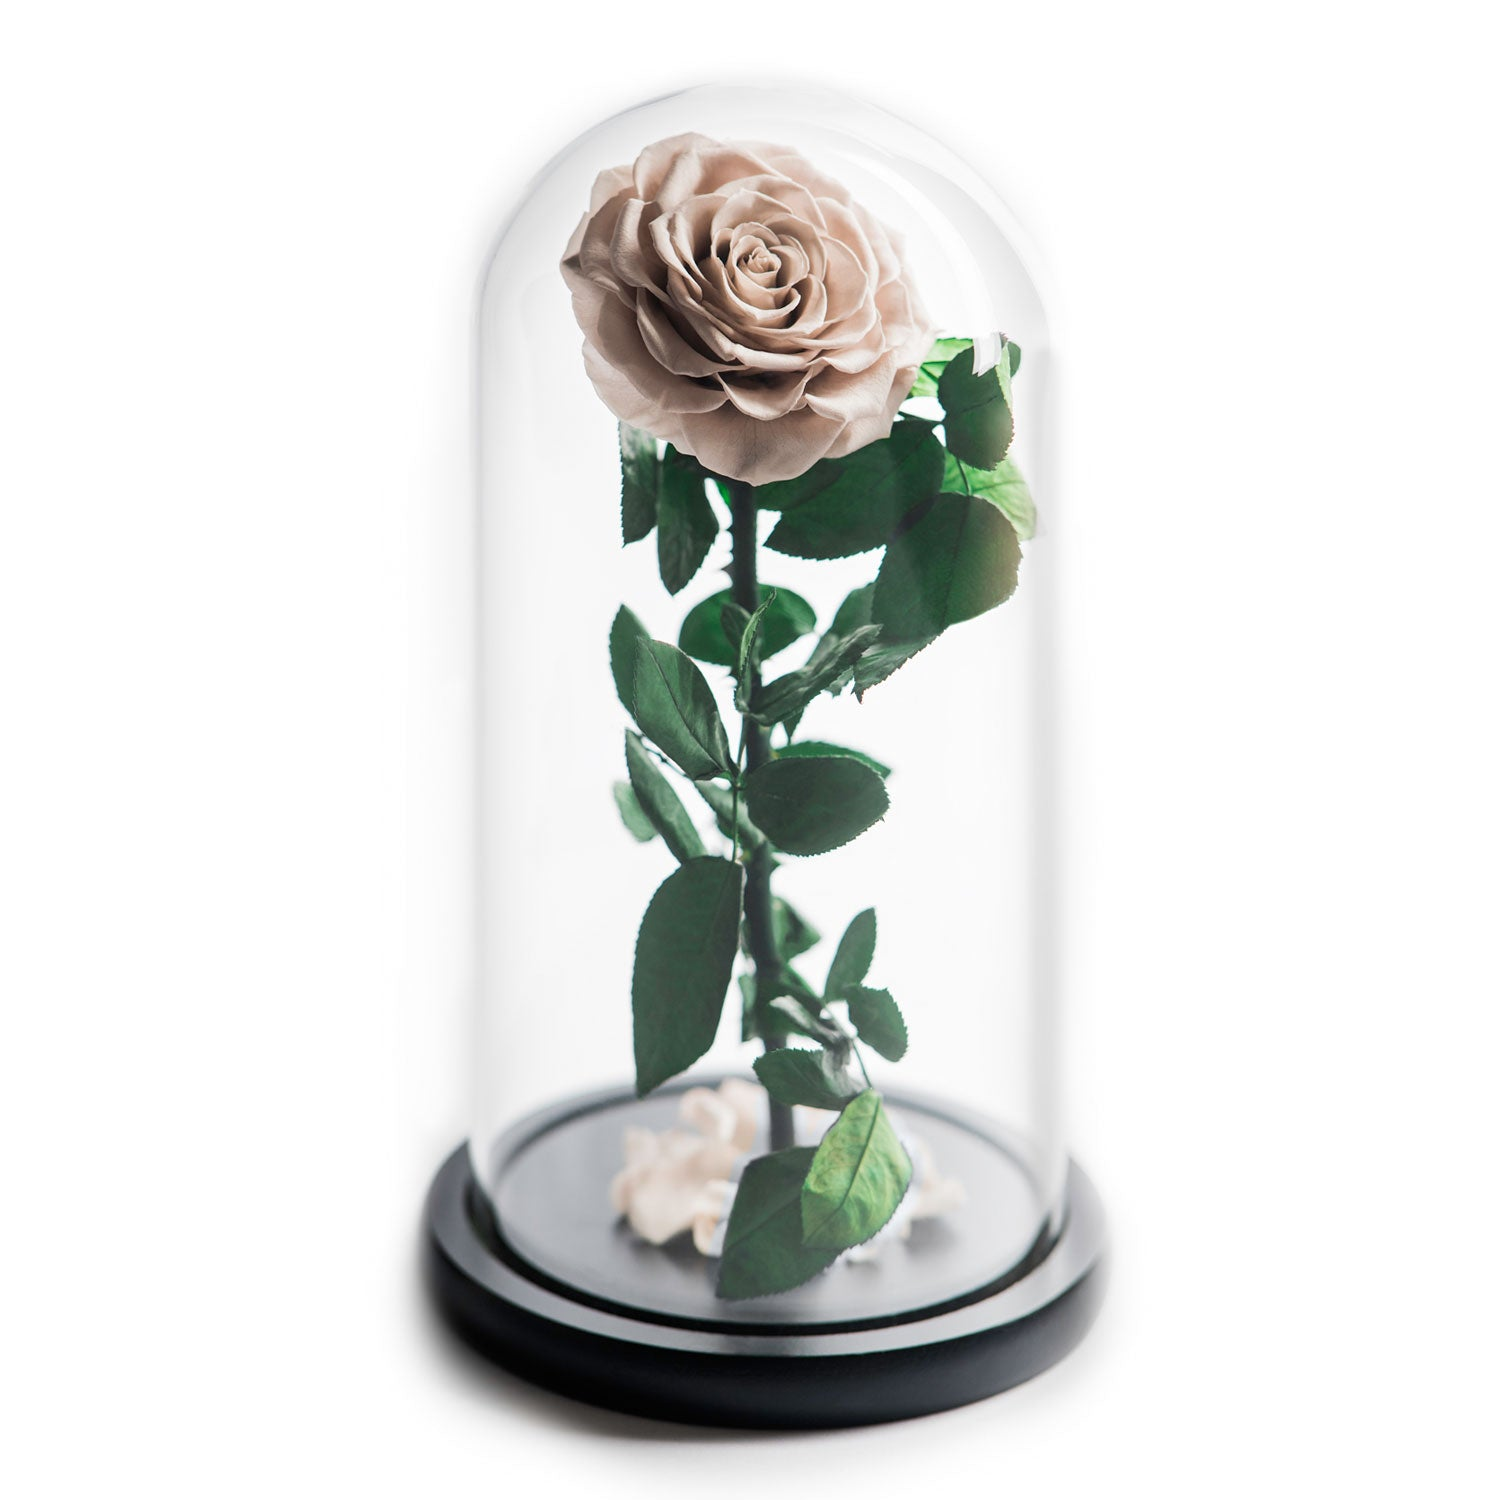 The Beauty and the Beast contains one eternity rose, picked at the point of perfection and preserved to last at least one year. Rose in glass dome